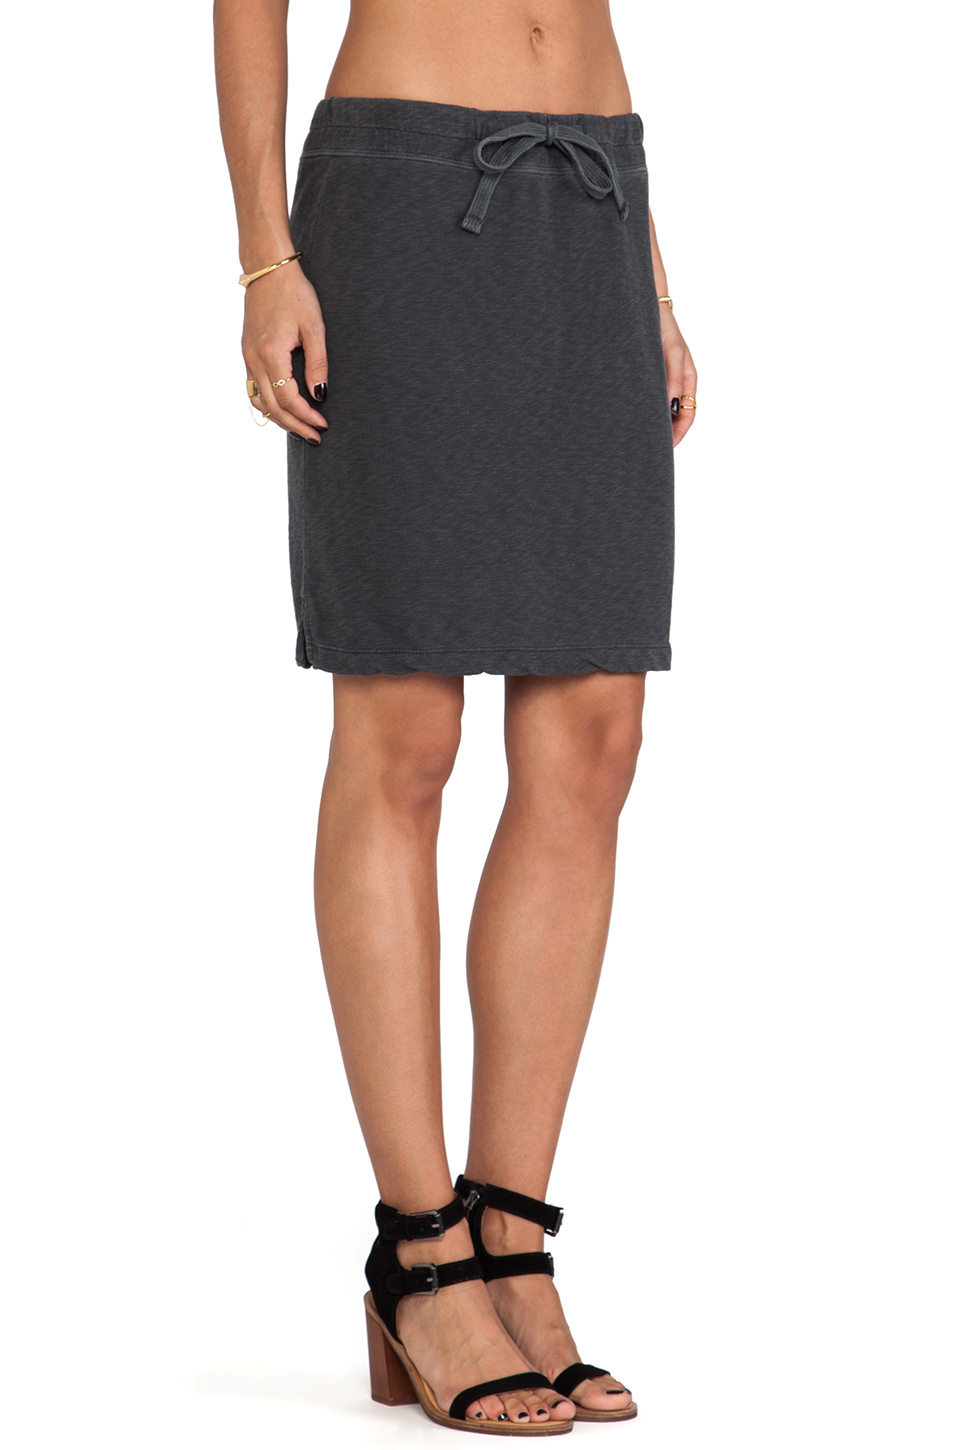 James perse Drawstring Vintage Cotton Skirt in Black | Lyst